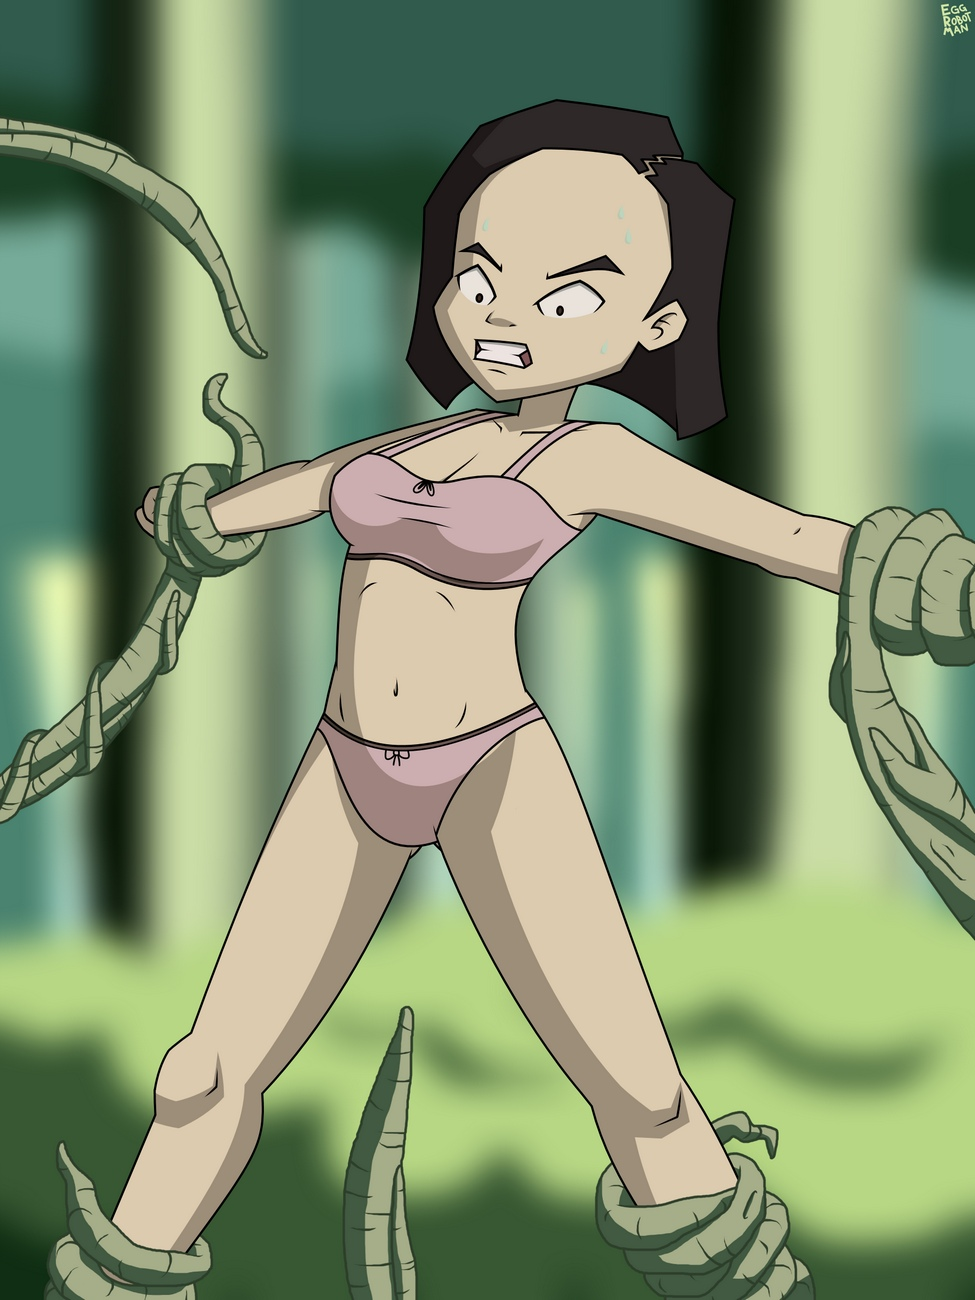 Yumi-Tentacle-Rape 4 free sex comic